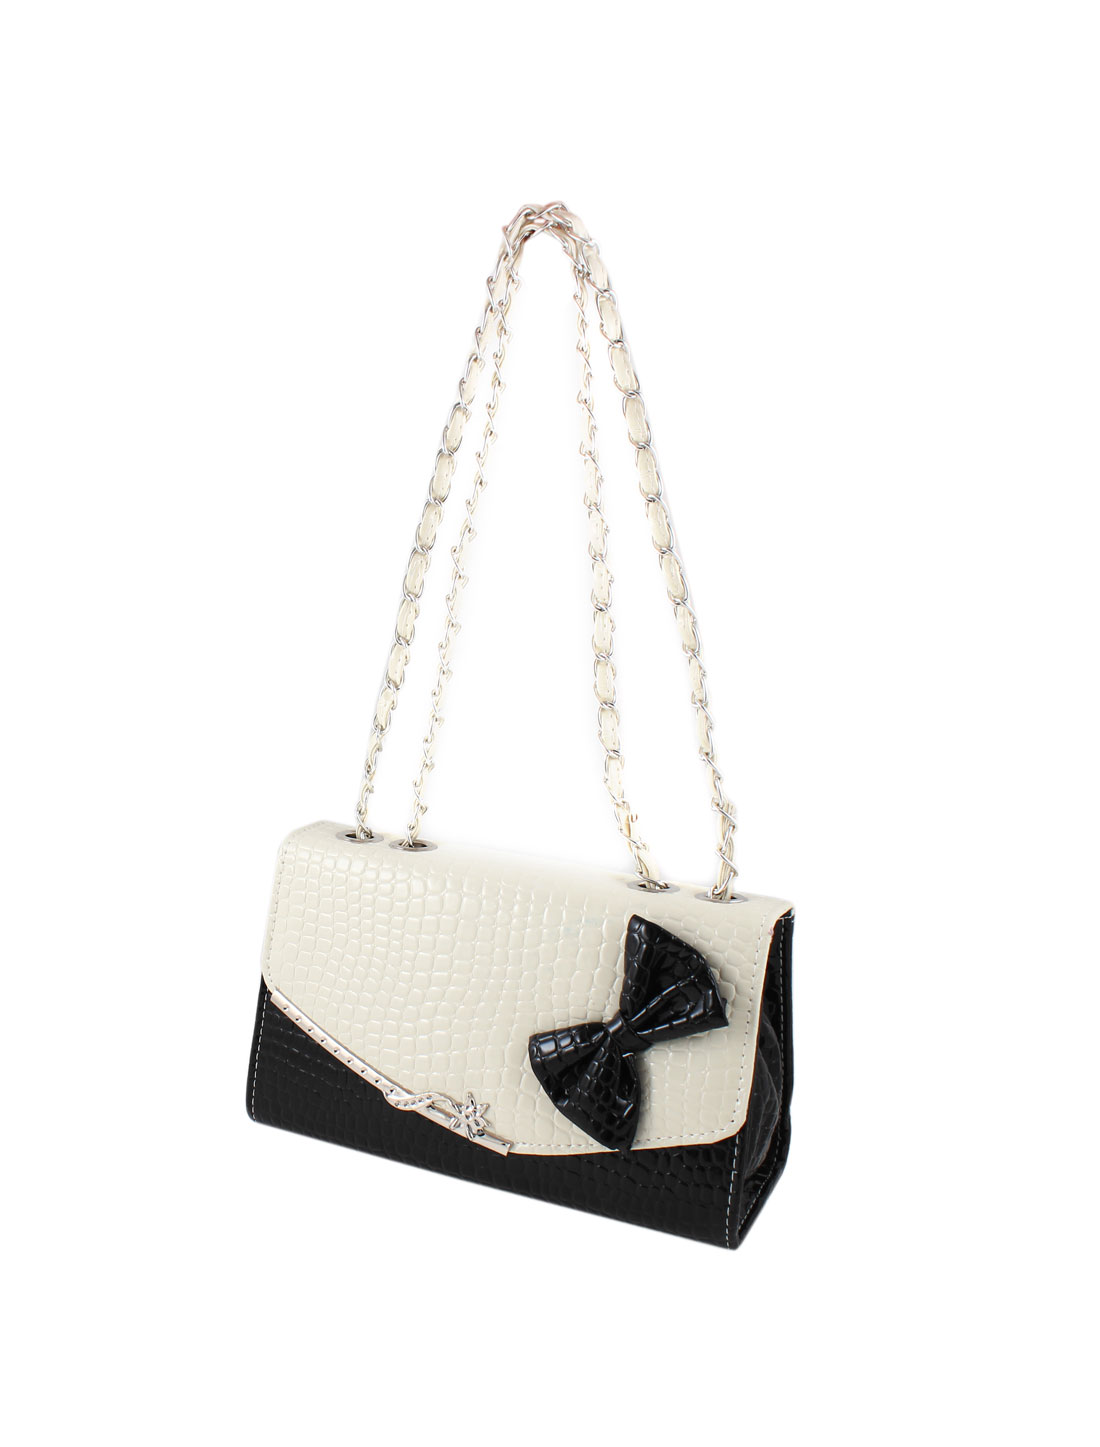 Lady Bow Tie Pattern Faux Leather 3 Layers Chain Shoulder Bag Black Beige